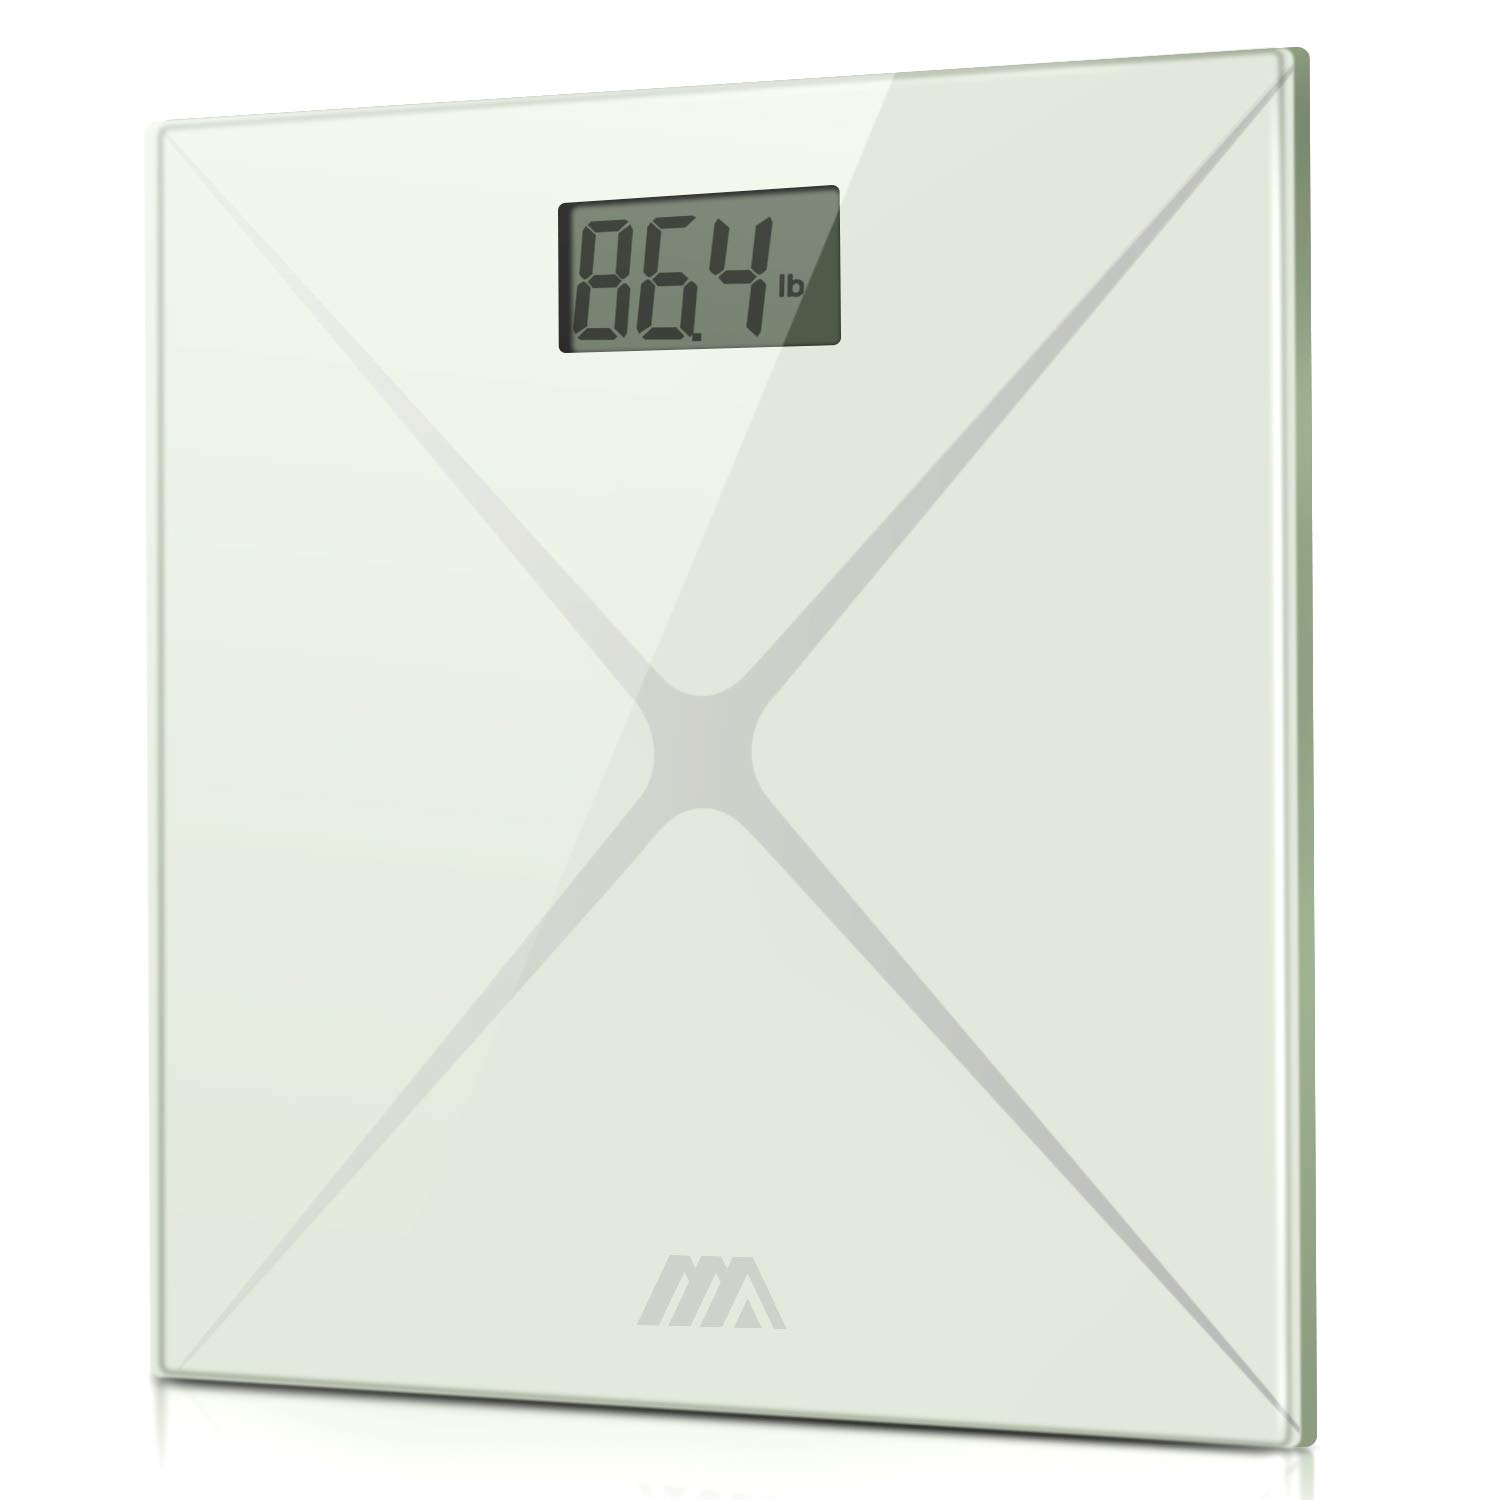 Digital Body Weight Scale, Bathroom Scale with Advanced Step-on Technology and LCD Backlight Display Scale,Tempered Glass Surface (White Silver)